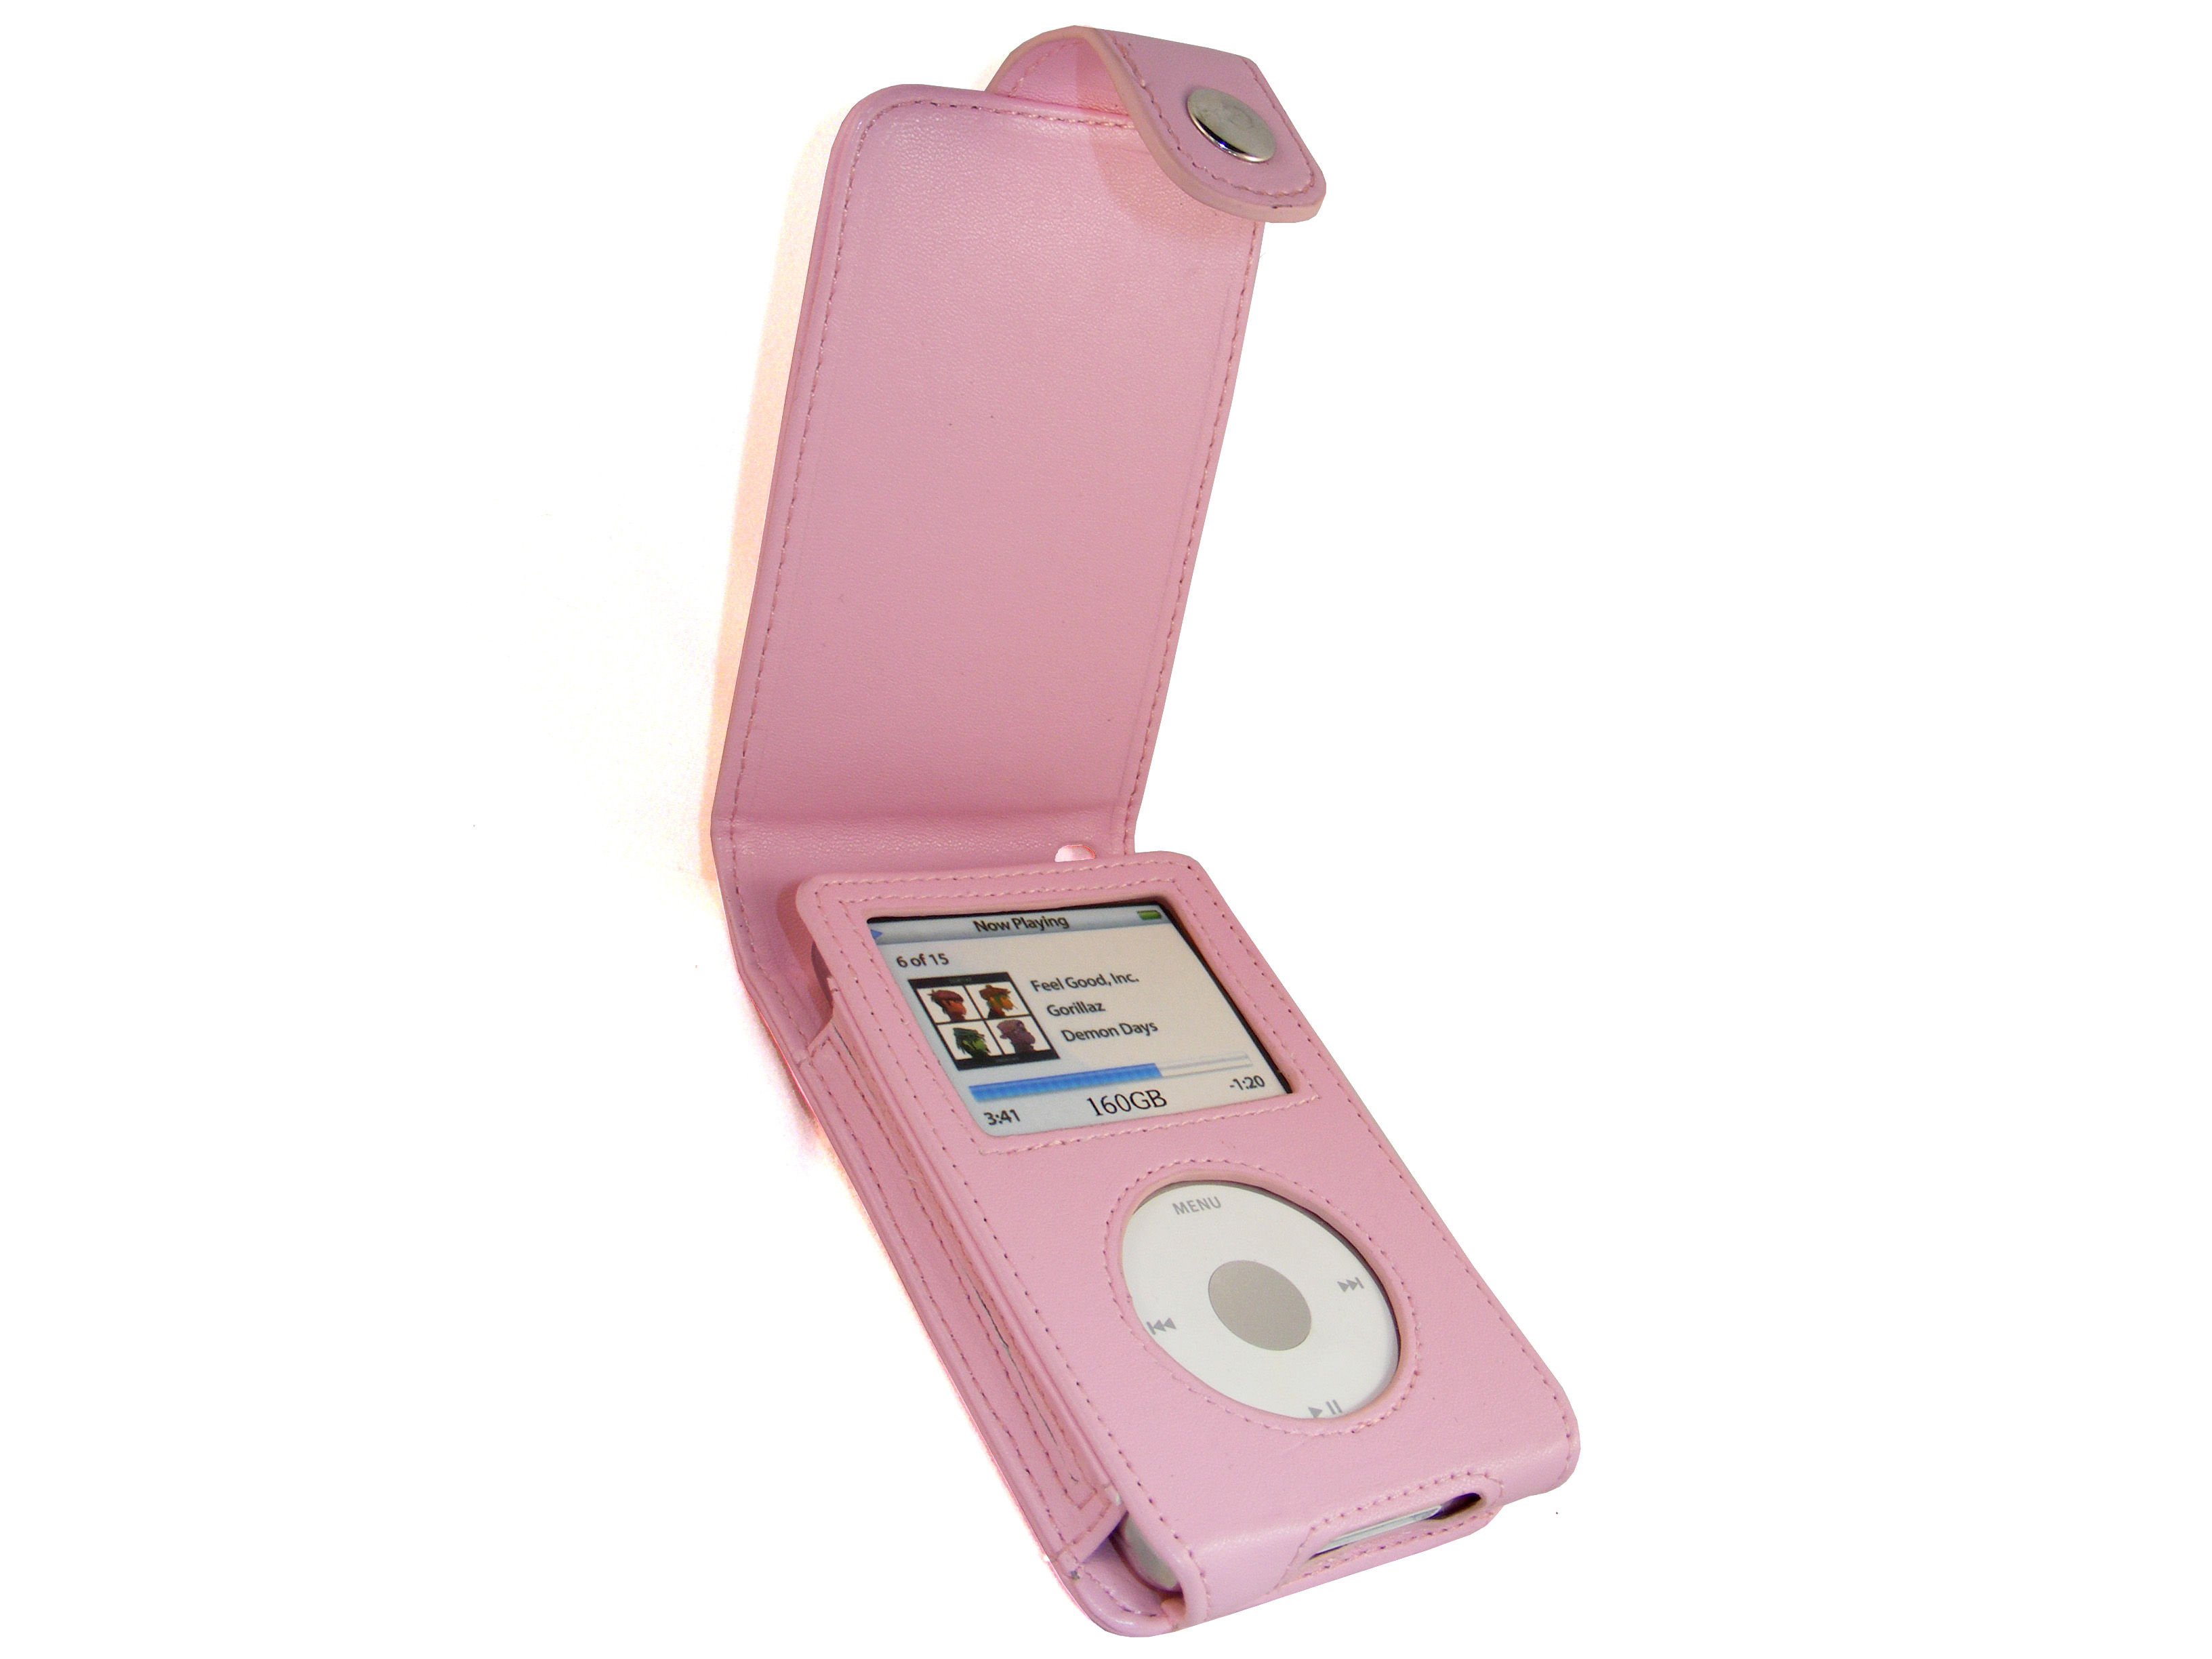 iGadgitz Pink PU Leather Case for Apple iPod Classic 80gb, 120gb & latest 160gb + Belt Clip & Screen Protector